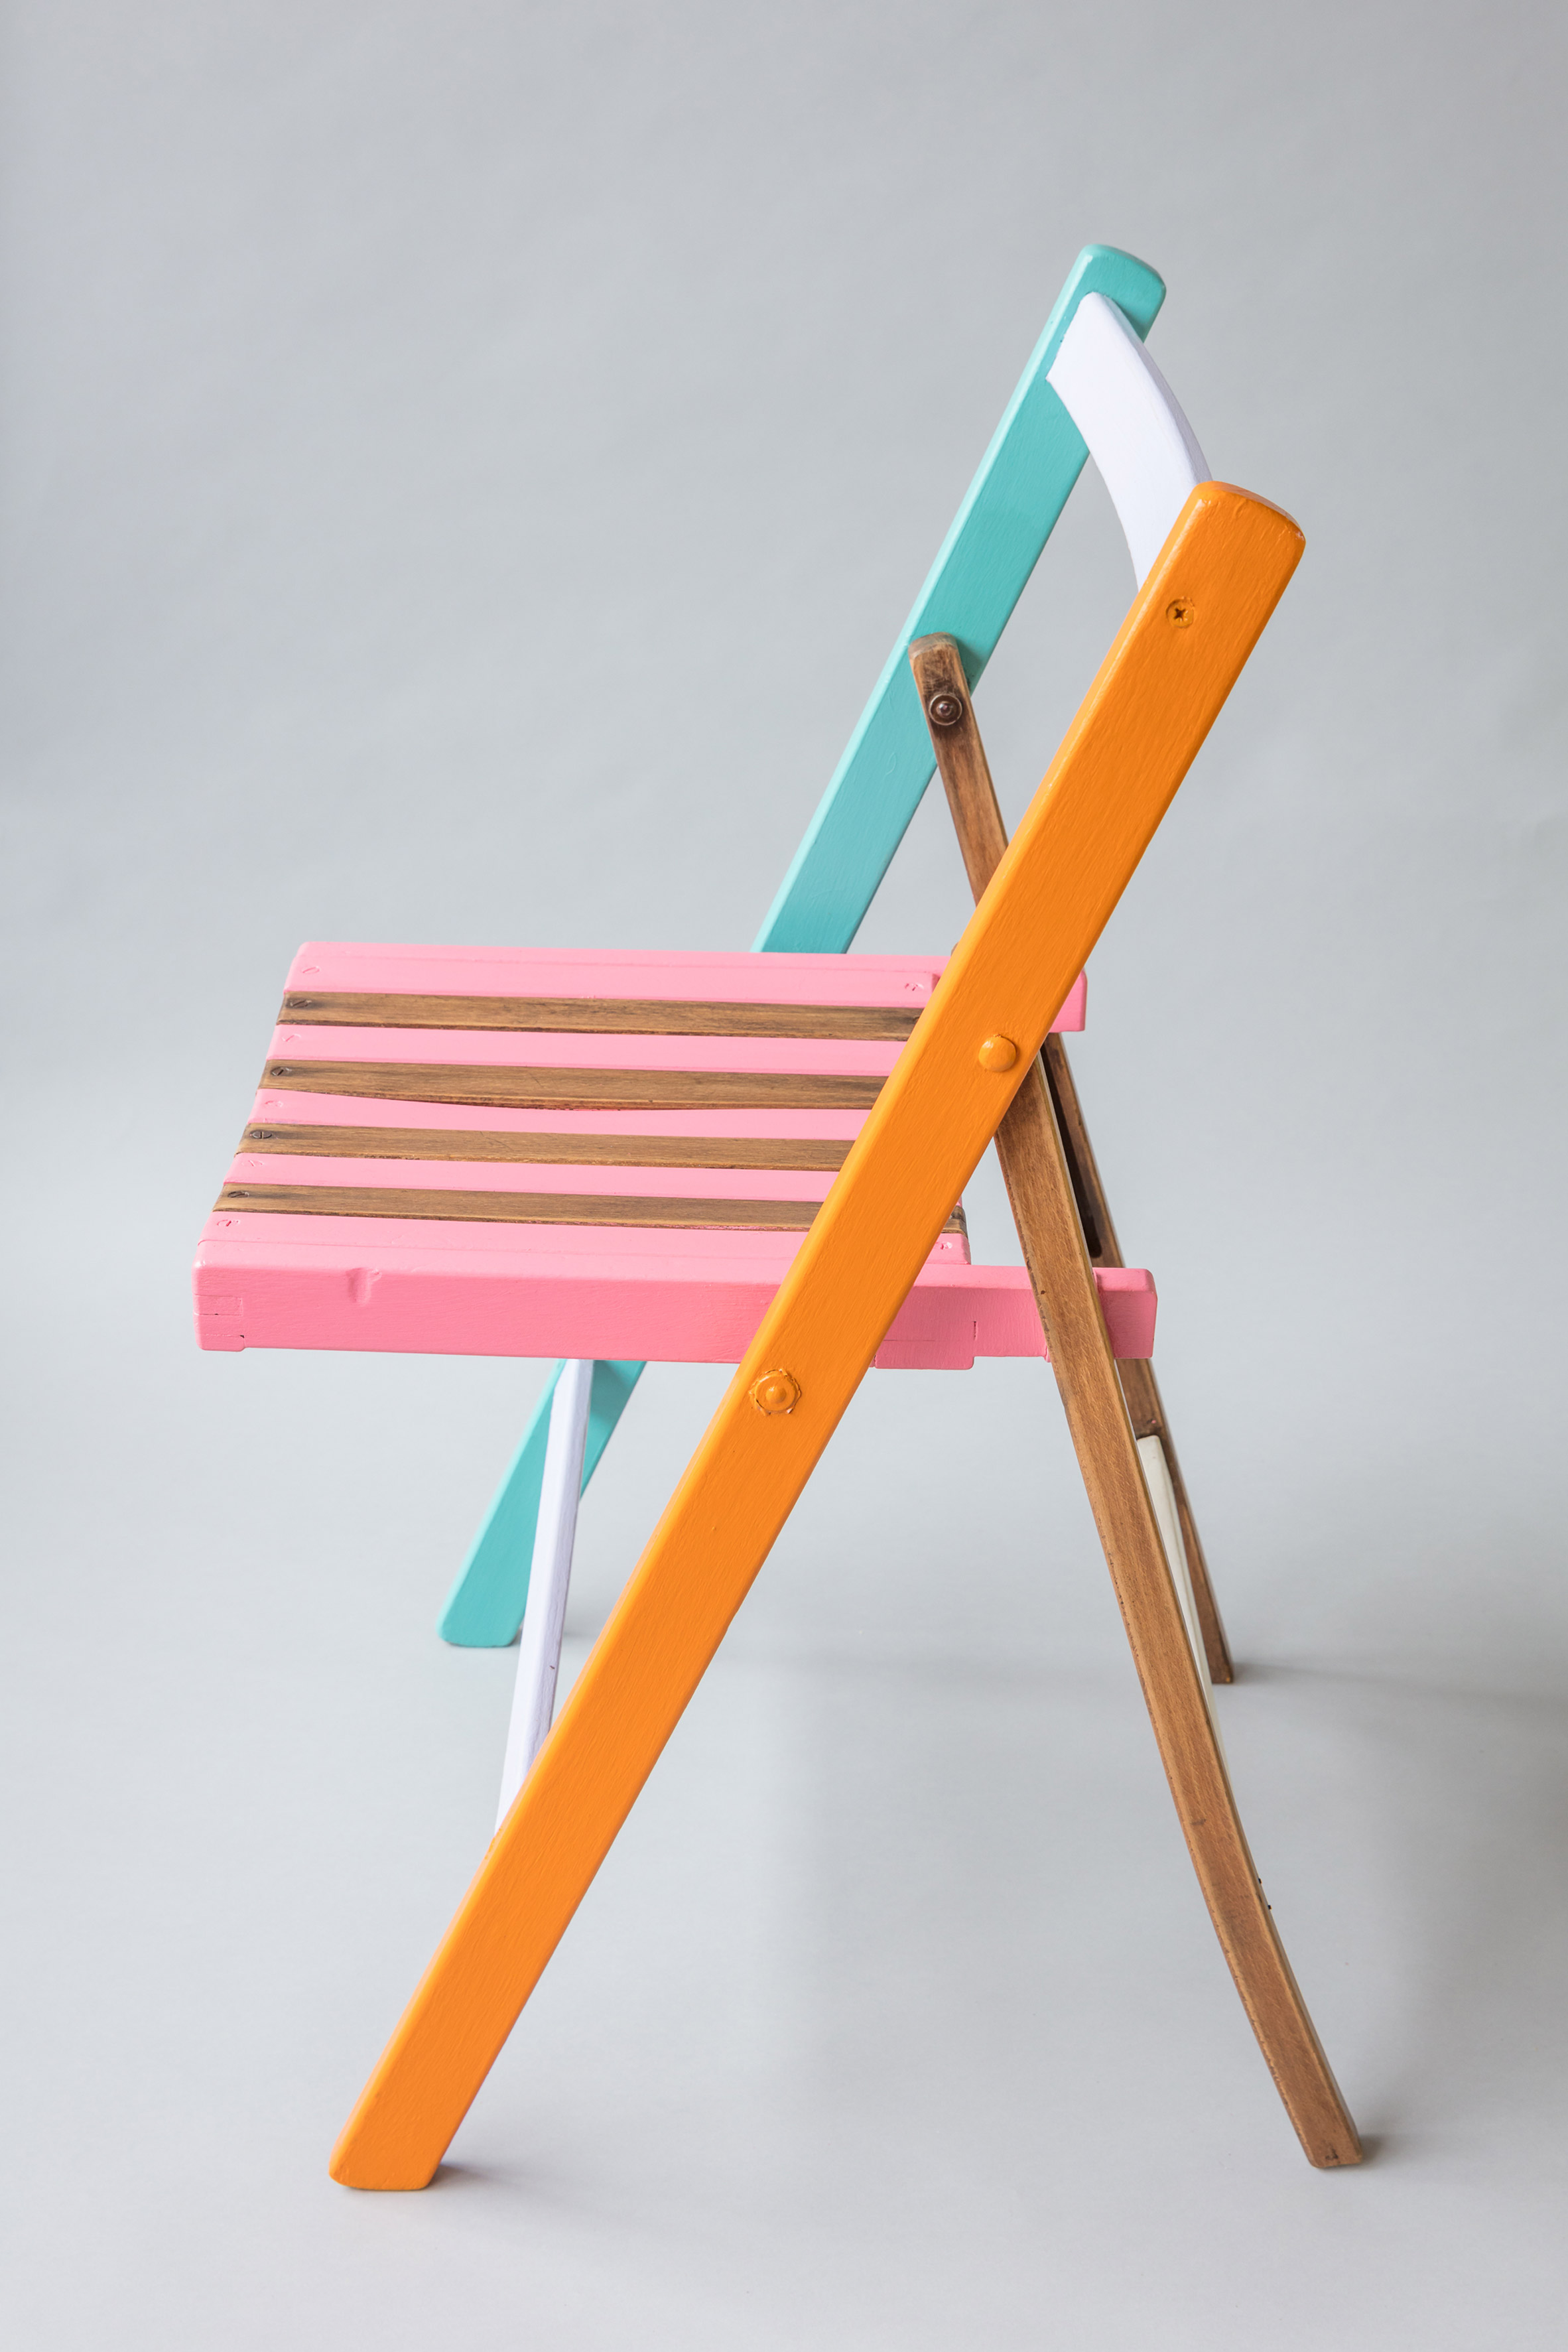 Yinka Ilori teams up with recovering addicts to create range of colourful chairs